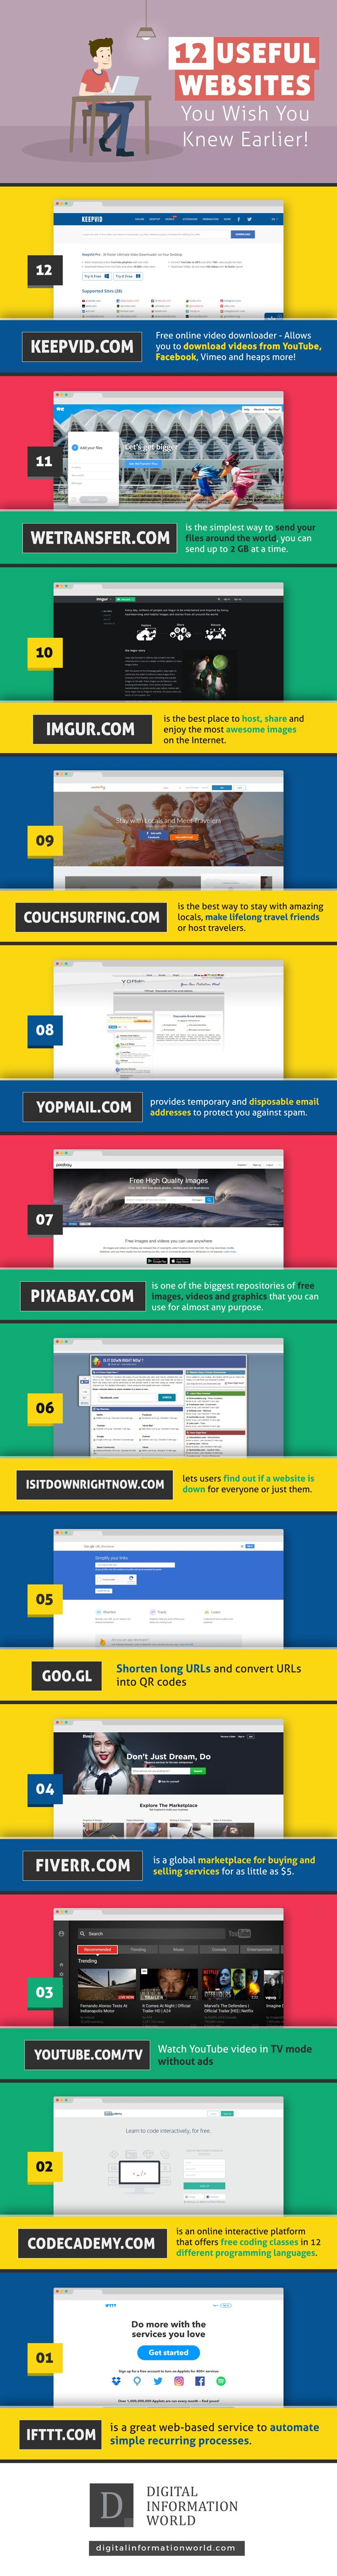 25 Useful Websites You Wish you Knew Earlier